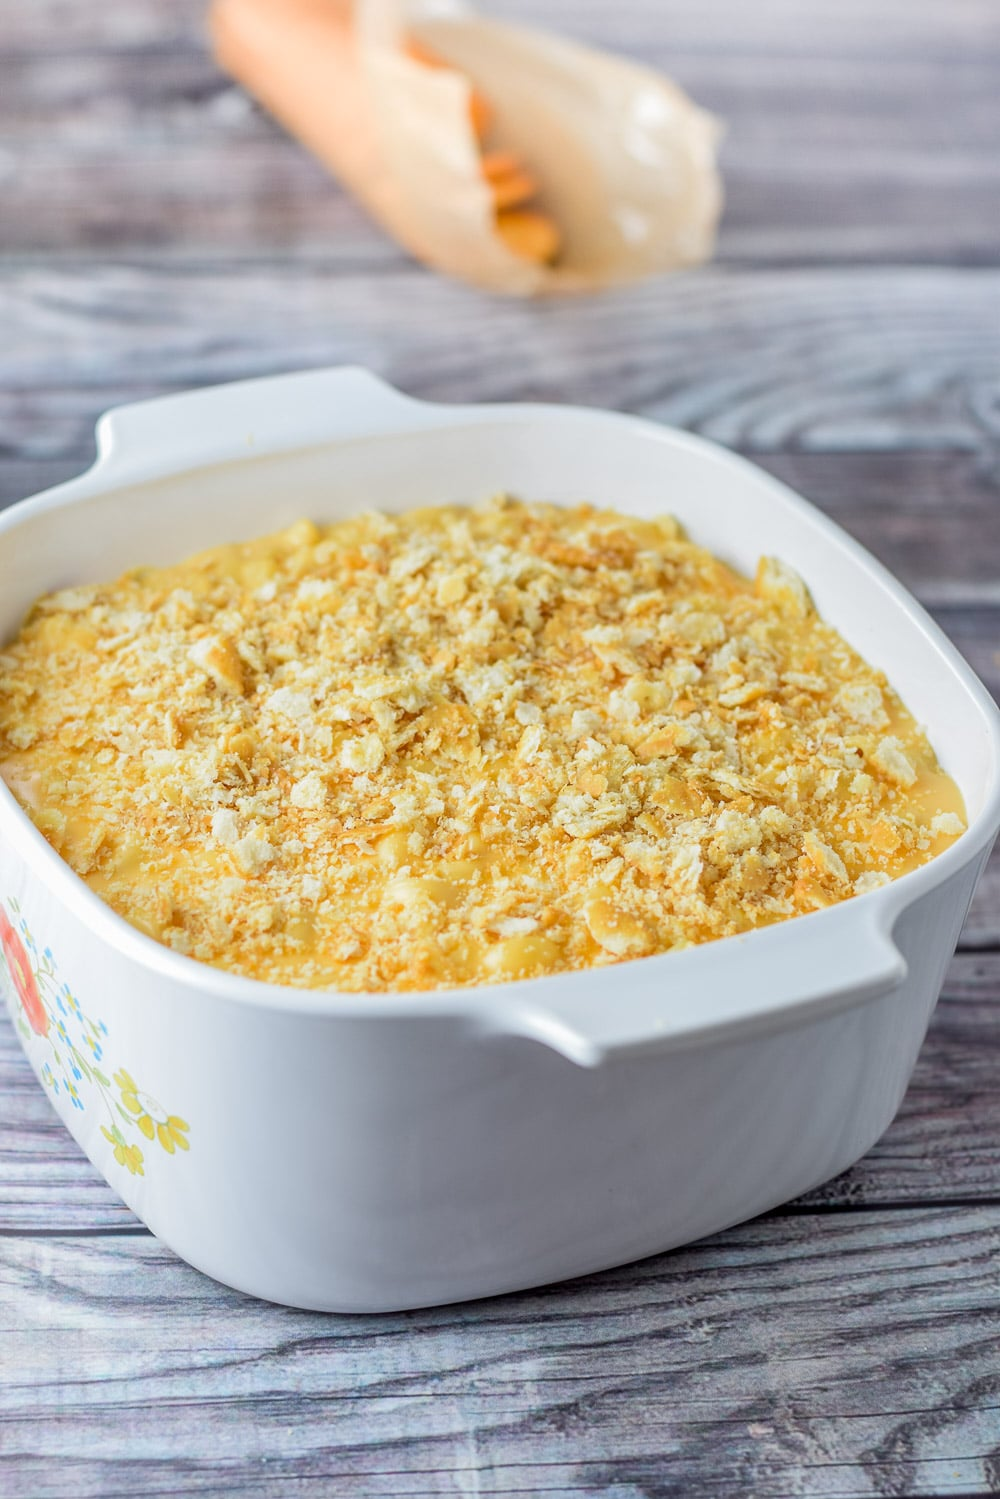 Ritz crackers crumbled on cheese sauce and macaroni in the baking dish